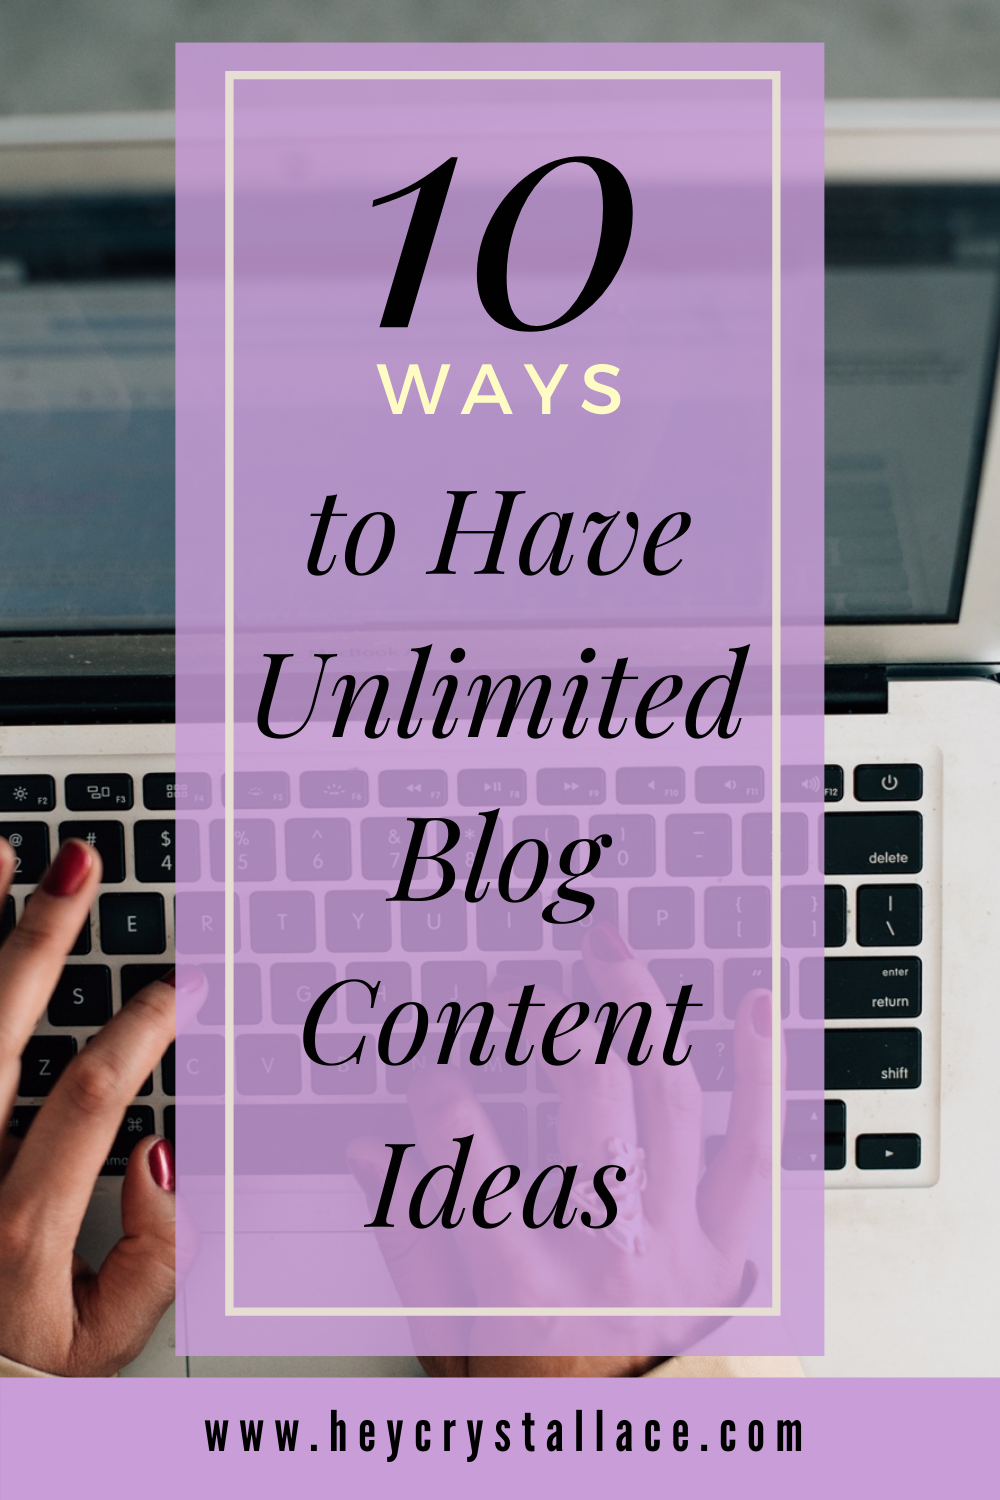 10 Proven Ways on How to Have Unlimited Blog Content Ideas